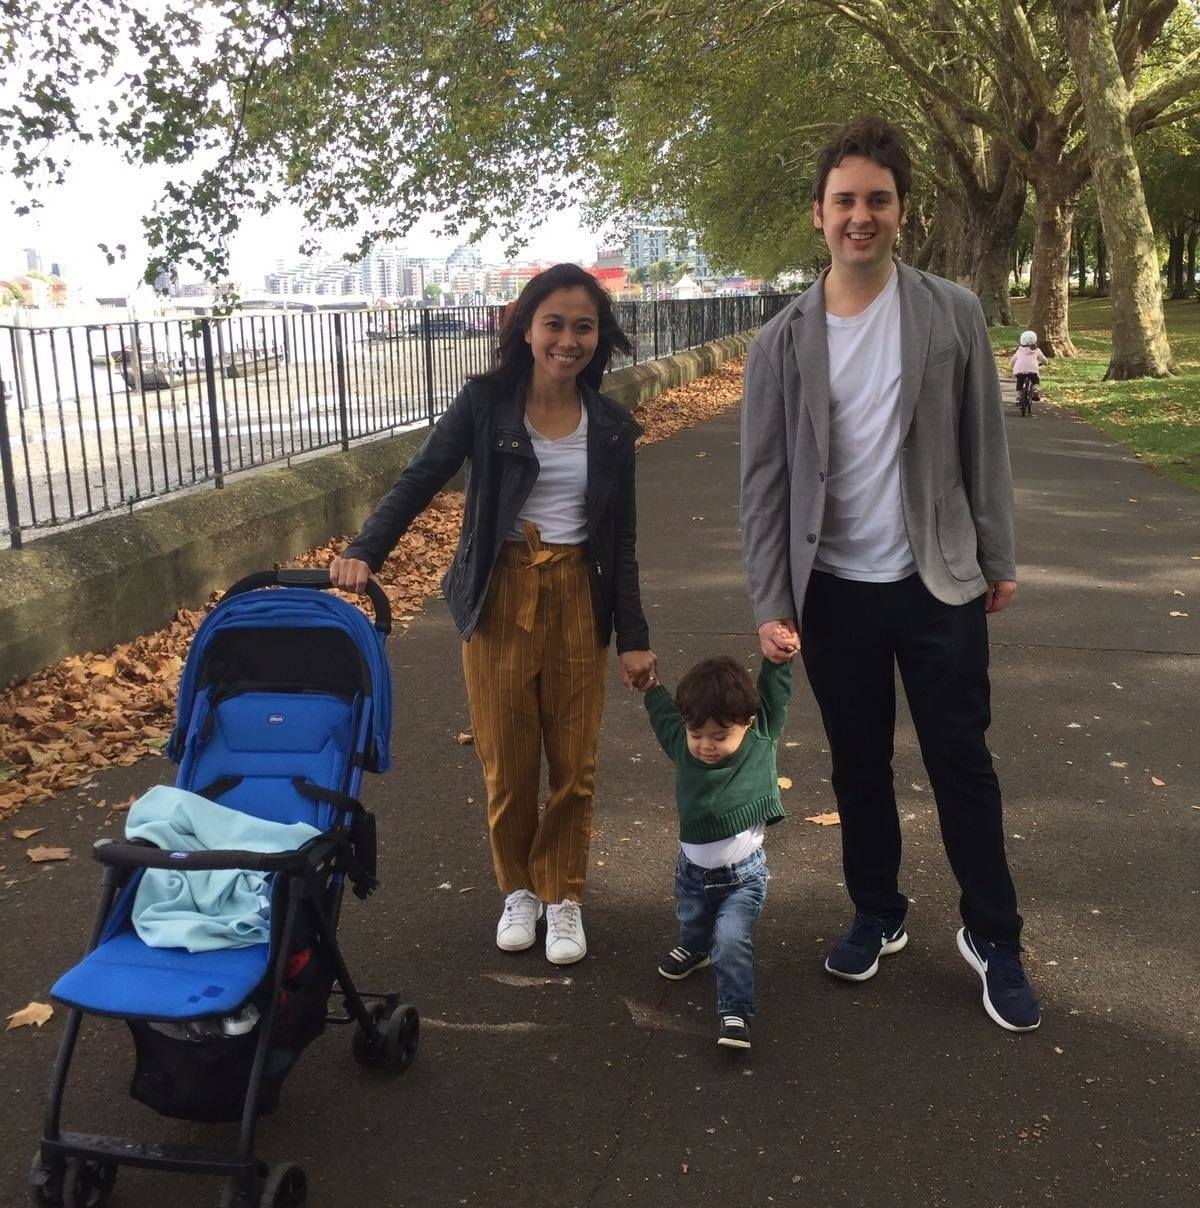 Chris Sharp with his wife and young son, walking along the Embankment in London